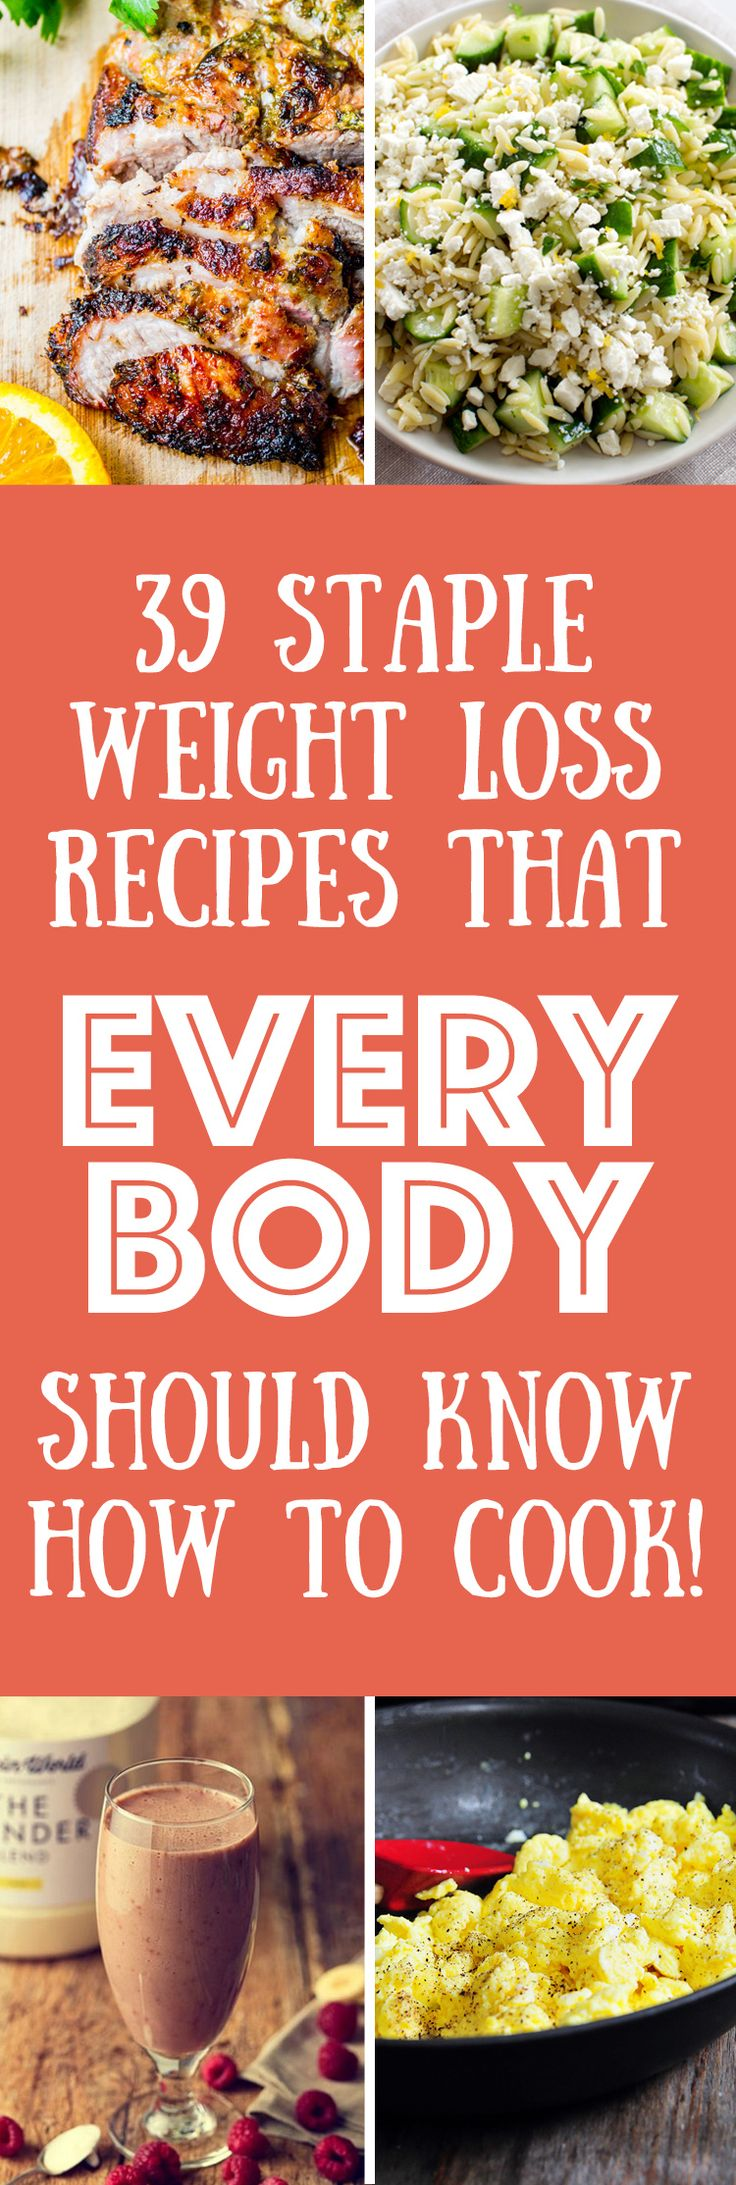 We have collected 39 weight loss recipes that we think everyone should know how to cook and know how to cook well. From perfectly cooked chicken breasts, to fish in a bag, to the healthiest smoothies, roasted vegetables, salads, soups and healthy eating treats like cookies and mousse.